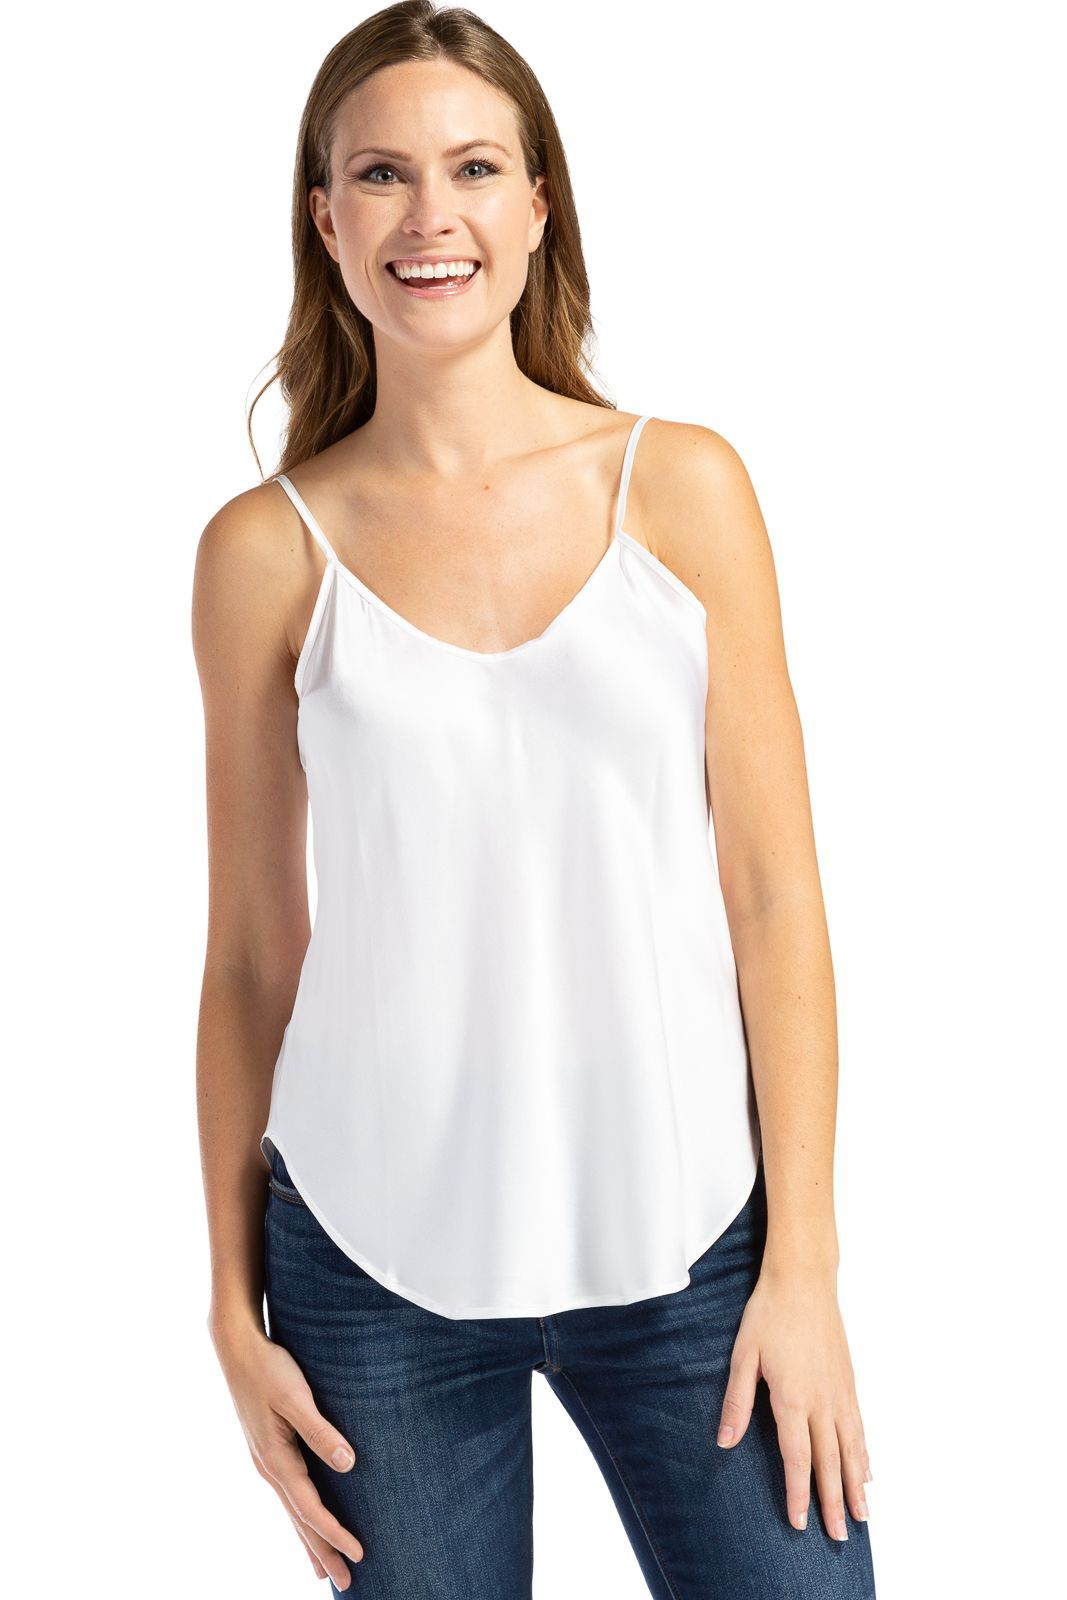 Women's 100% Pure Mulberry Silk Camisole Tank Top with Adjustable Spaghetti Straps | Fishers Finery